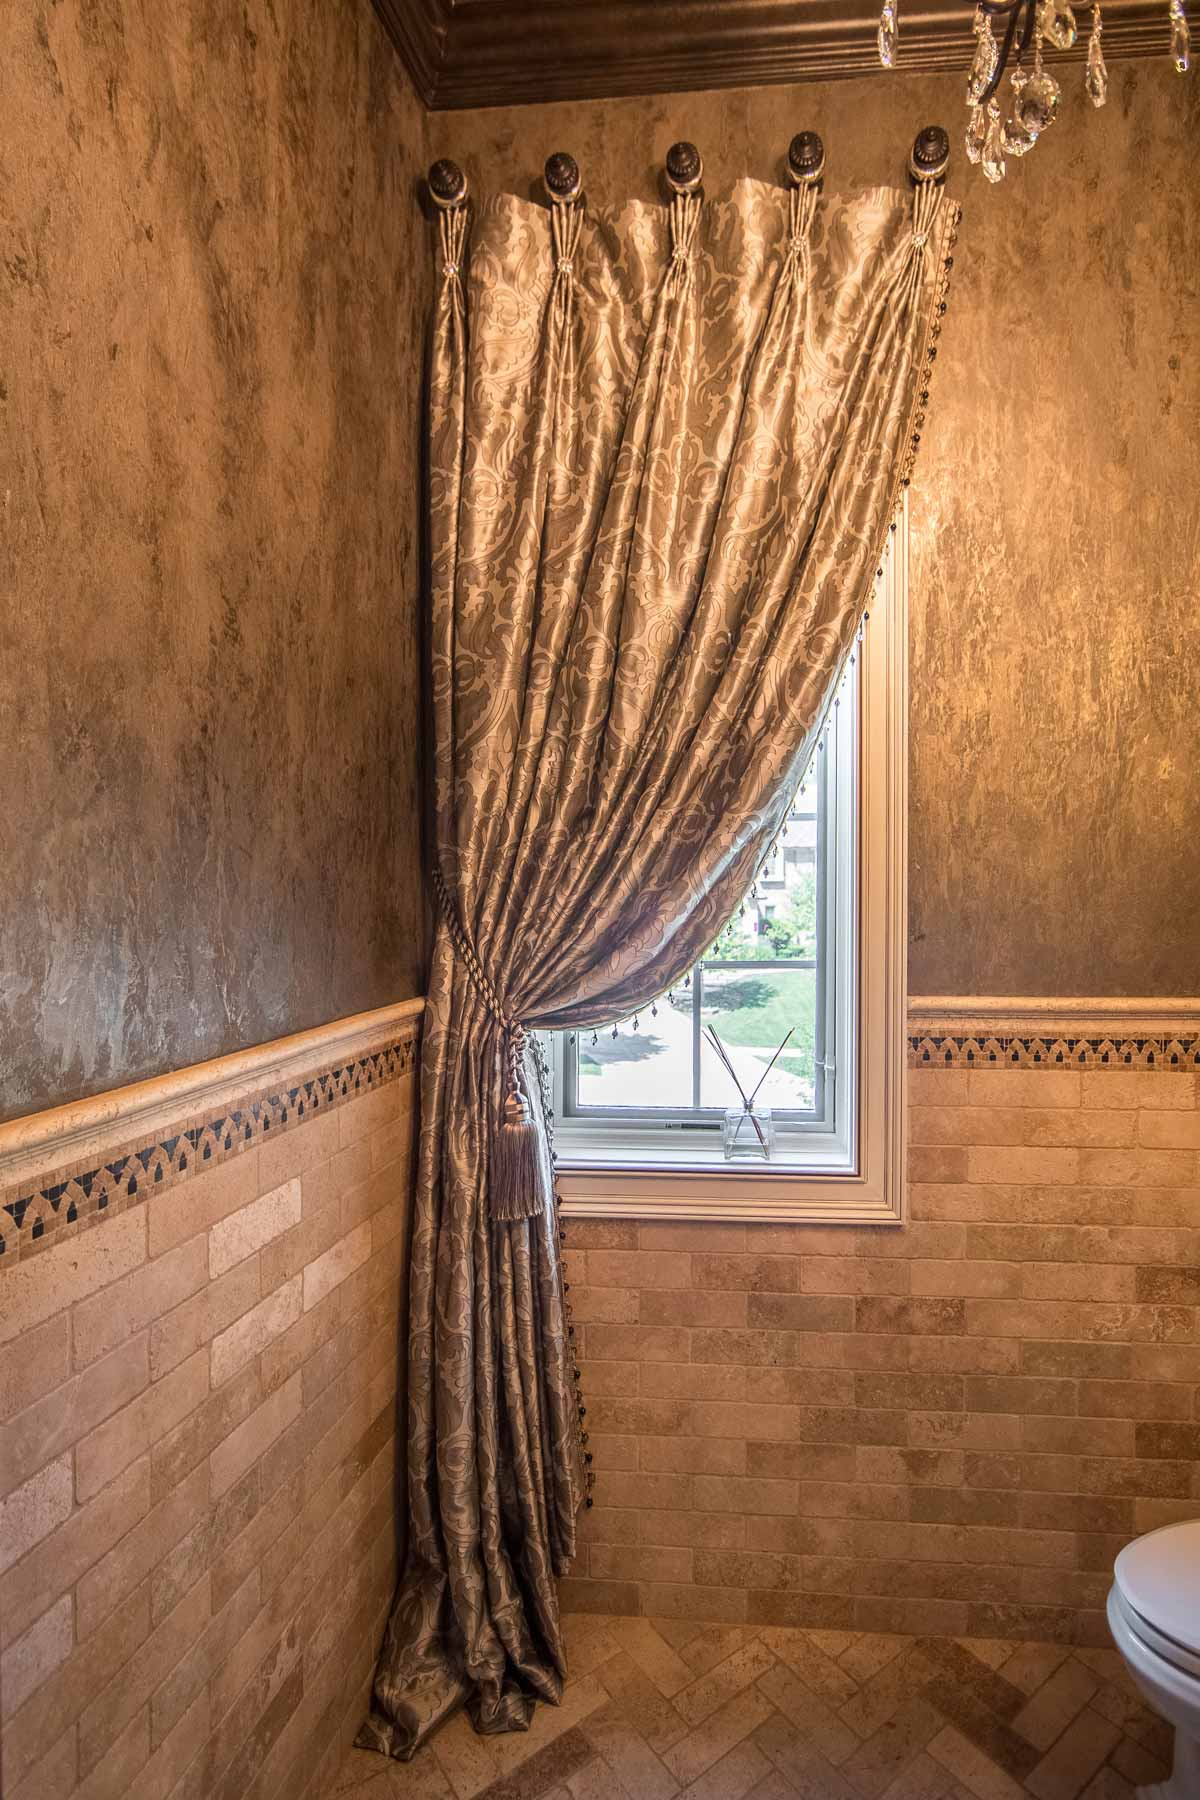 Custom Window Treatments Created & Installed by Our Drapery Artisan